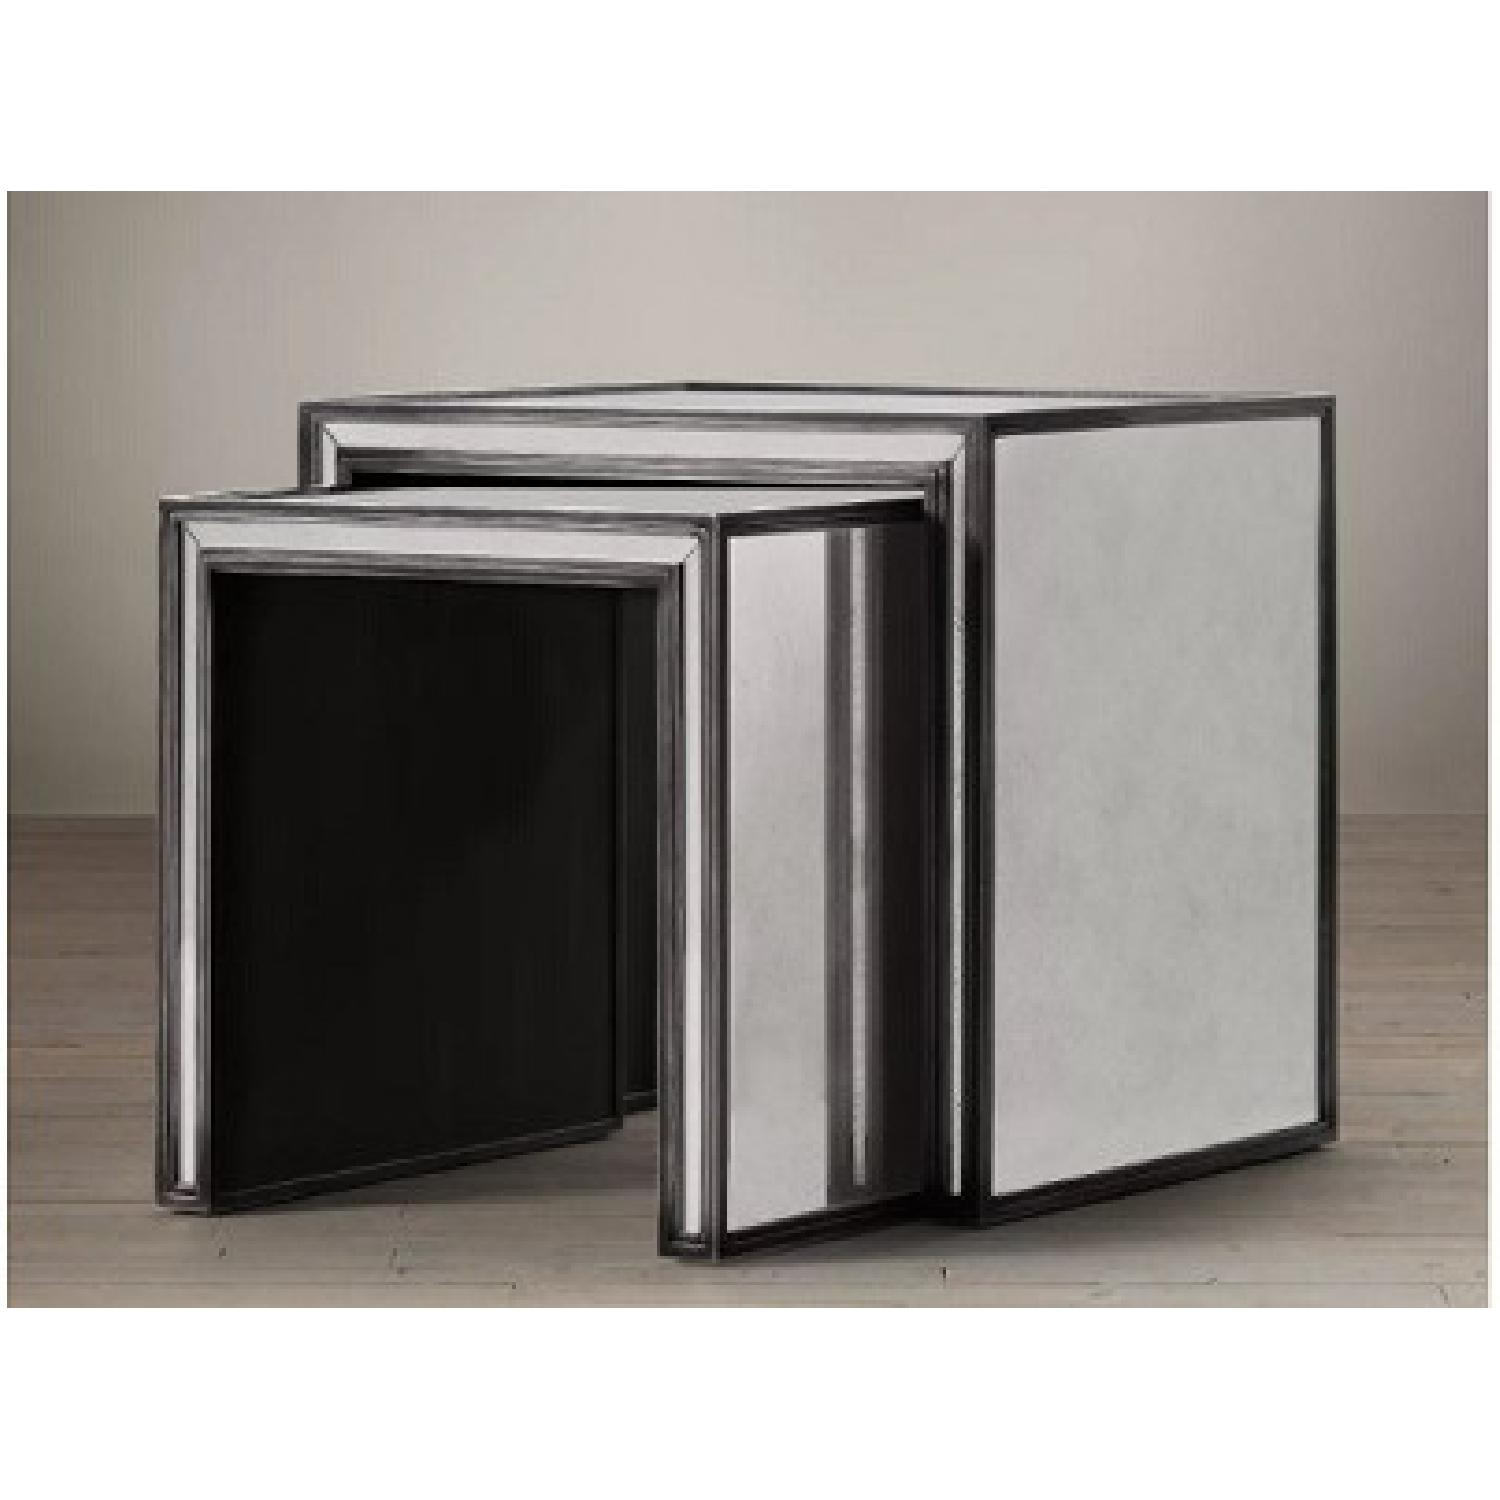 Restoration Hardware Mirrored Nesting Side Tables - image-0